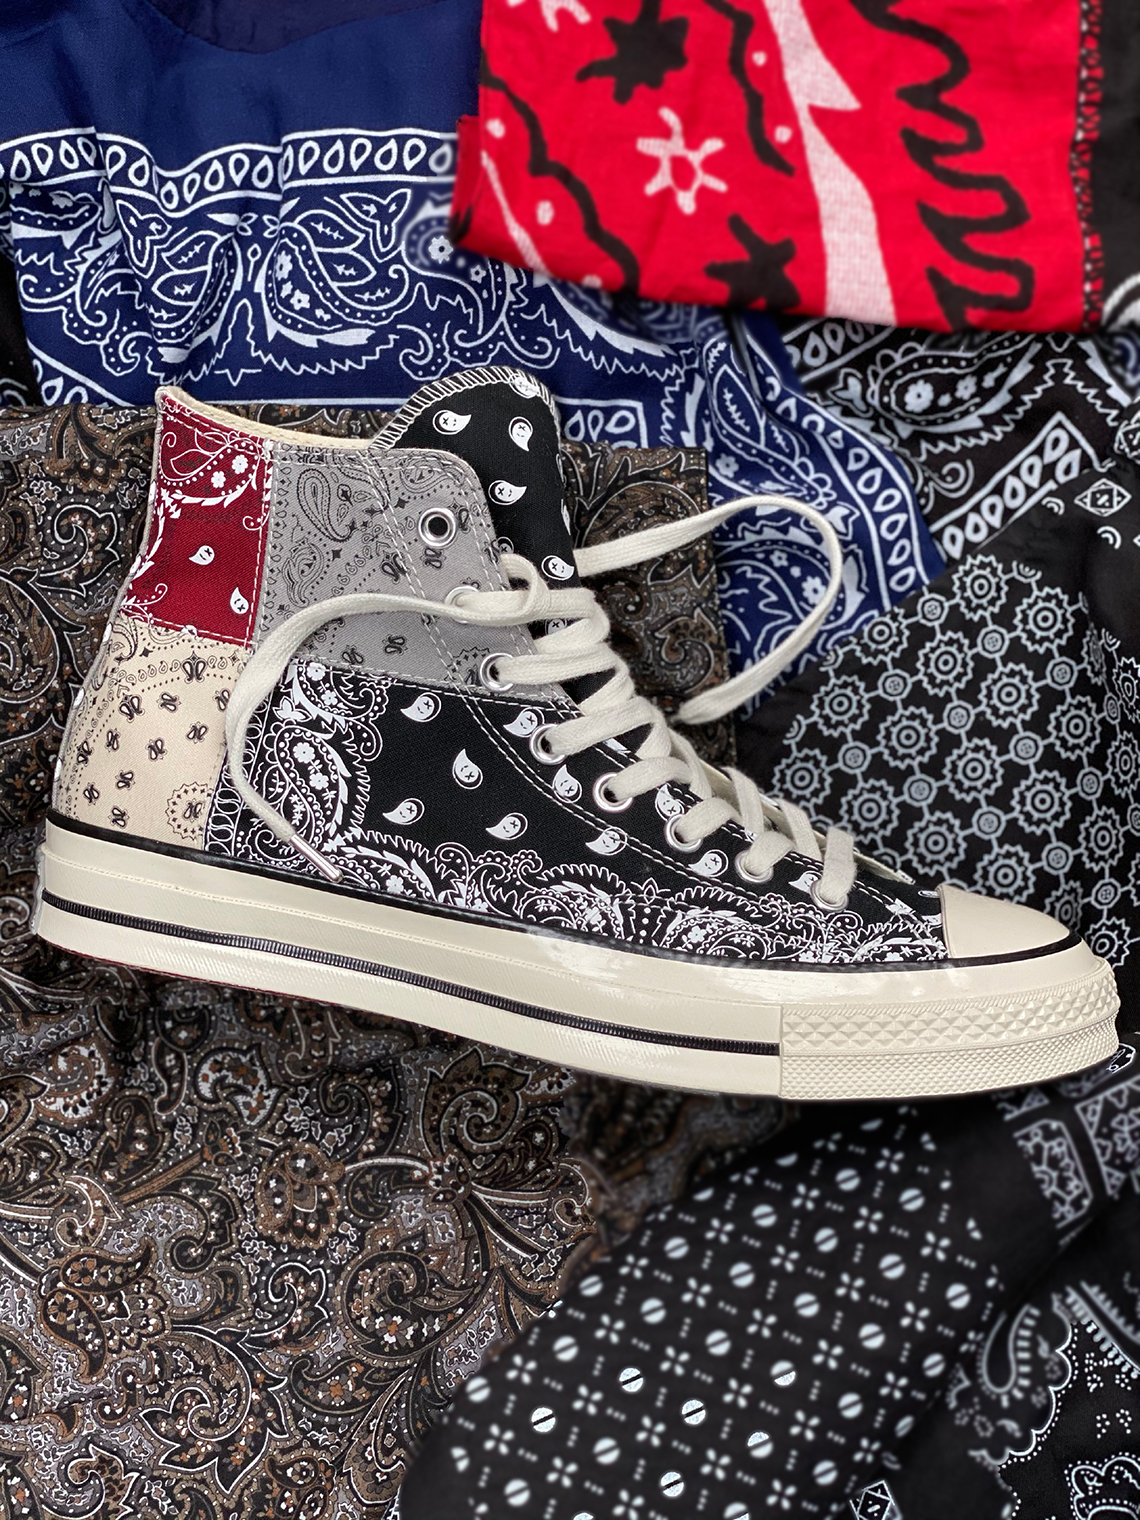 Offspring X Converse Bandana Paisley Blocking Chuck 70